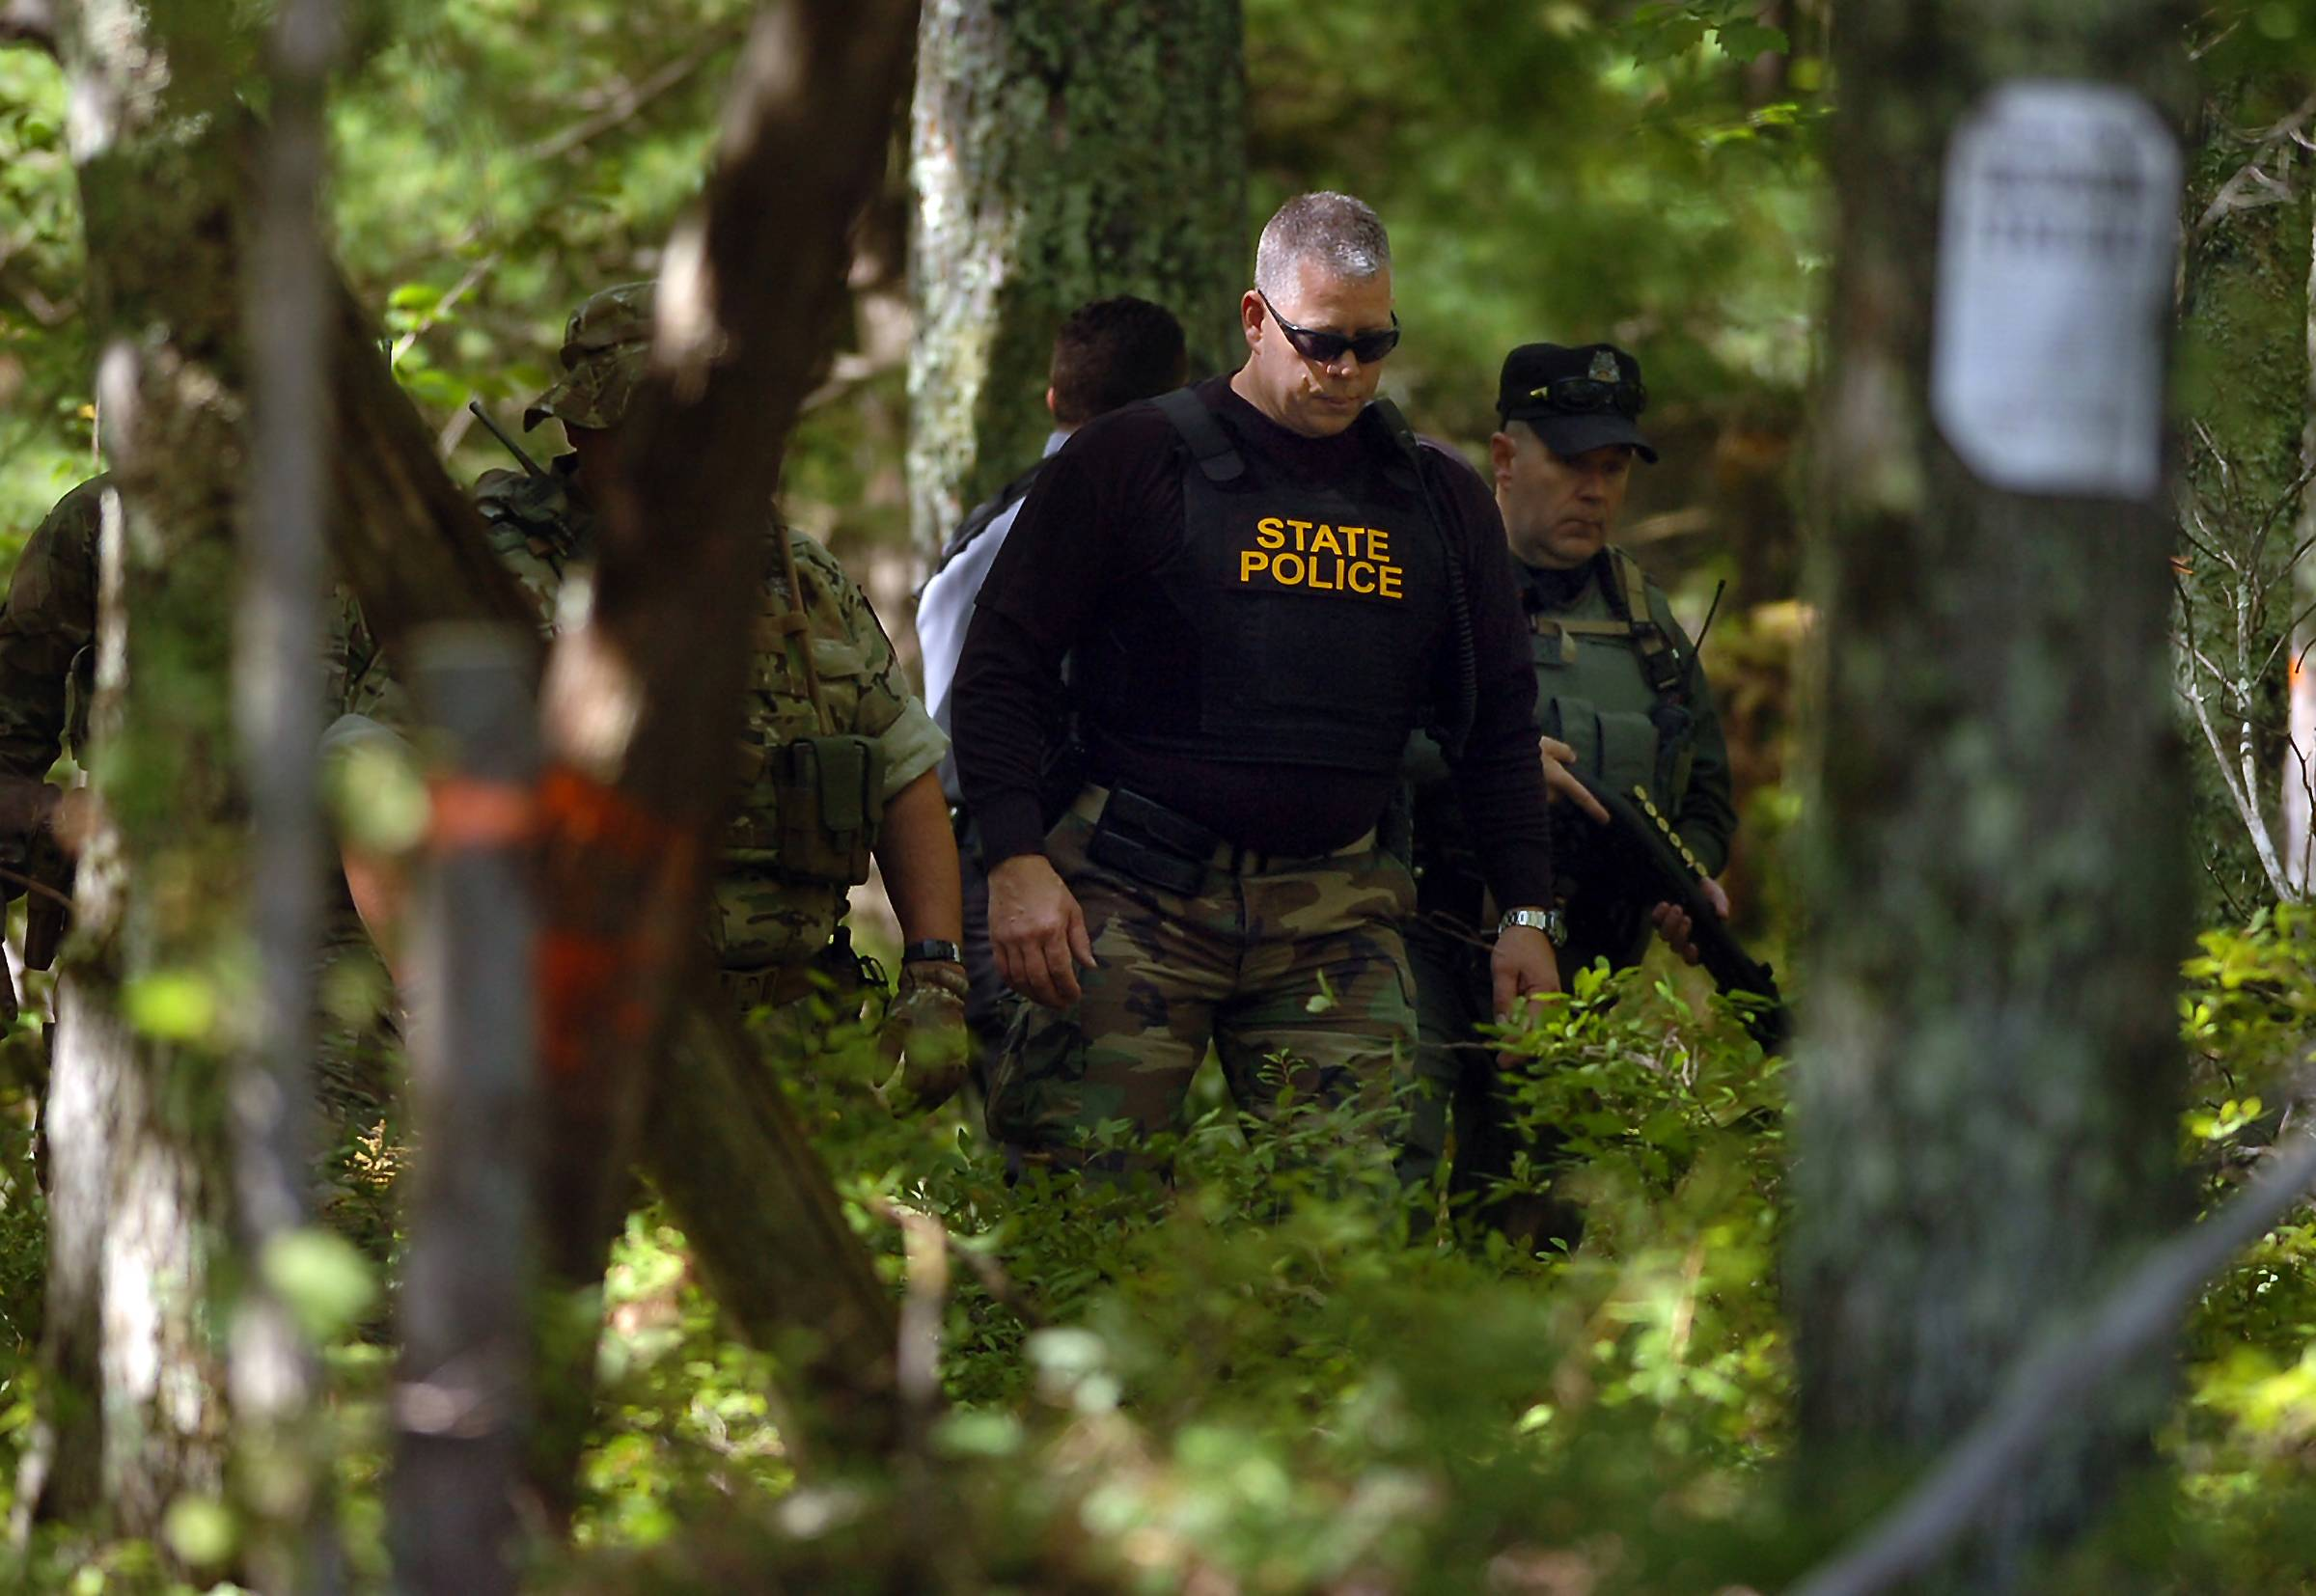 A Pennsylvania state trooper and others investigate a wooded area across from the police barracks Sunday in Blooming Grove Township, Pa., near where, on Friday night, a state trooper was killed and another wounded after a shooting ambush at the barracks. No arrests have been made.